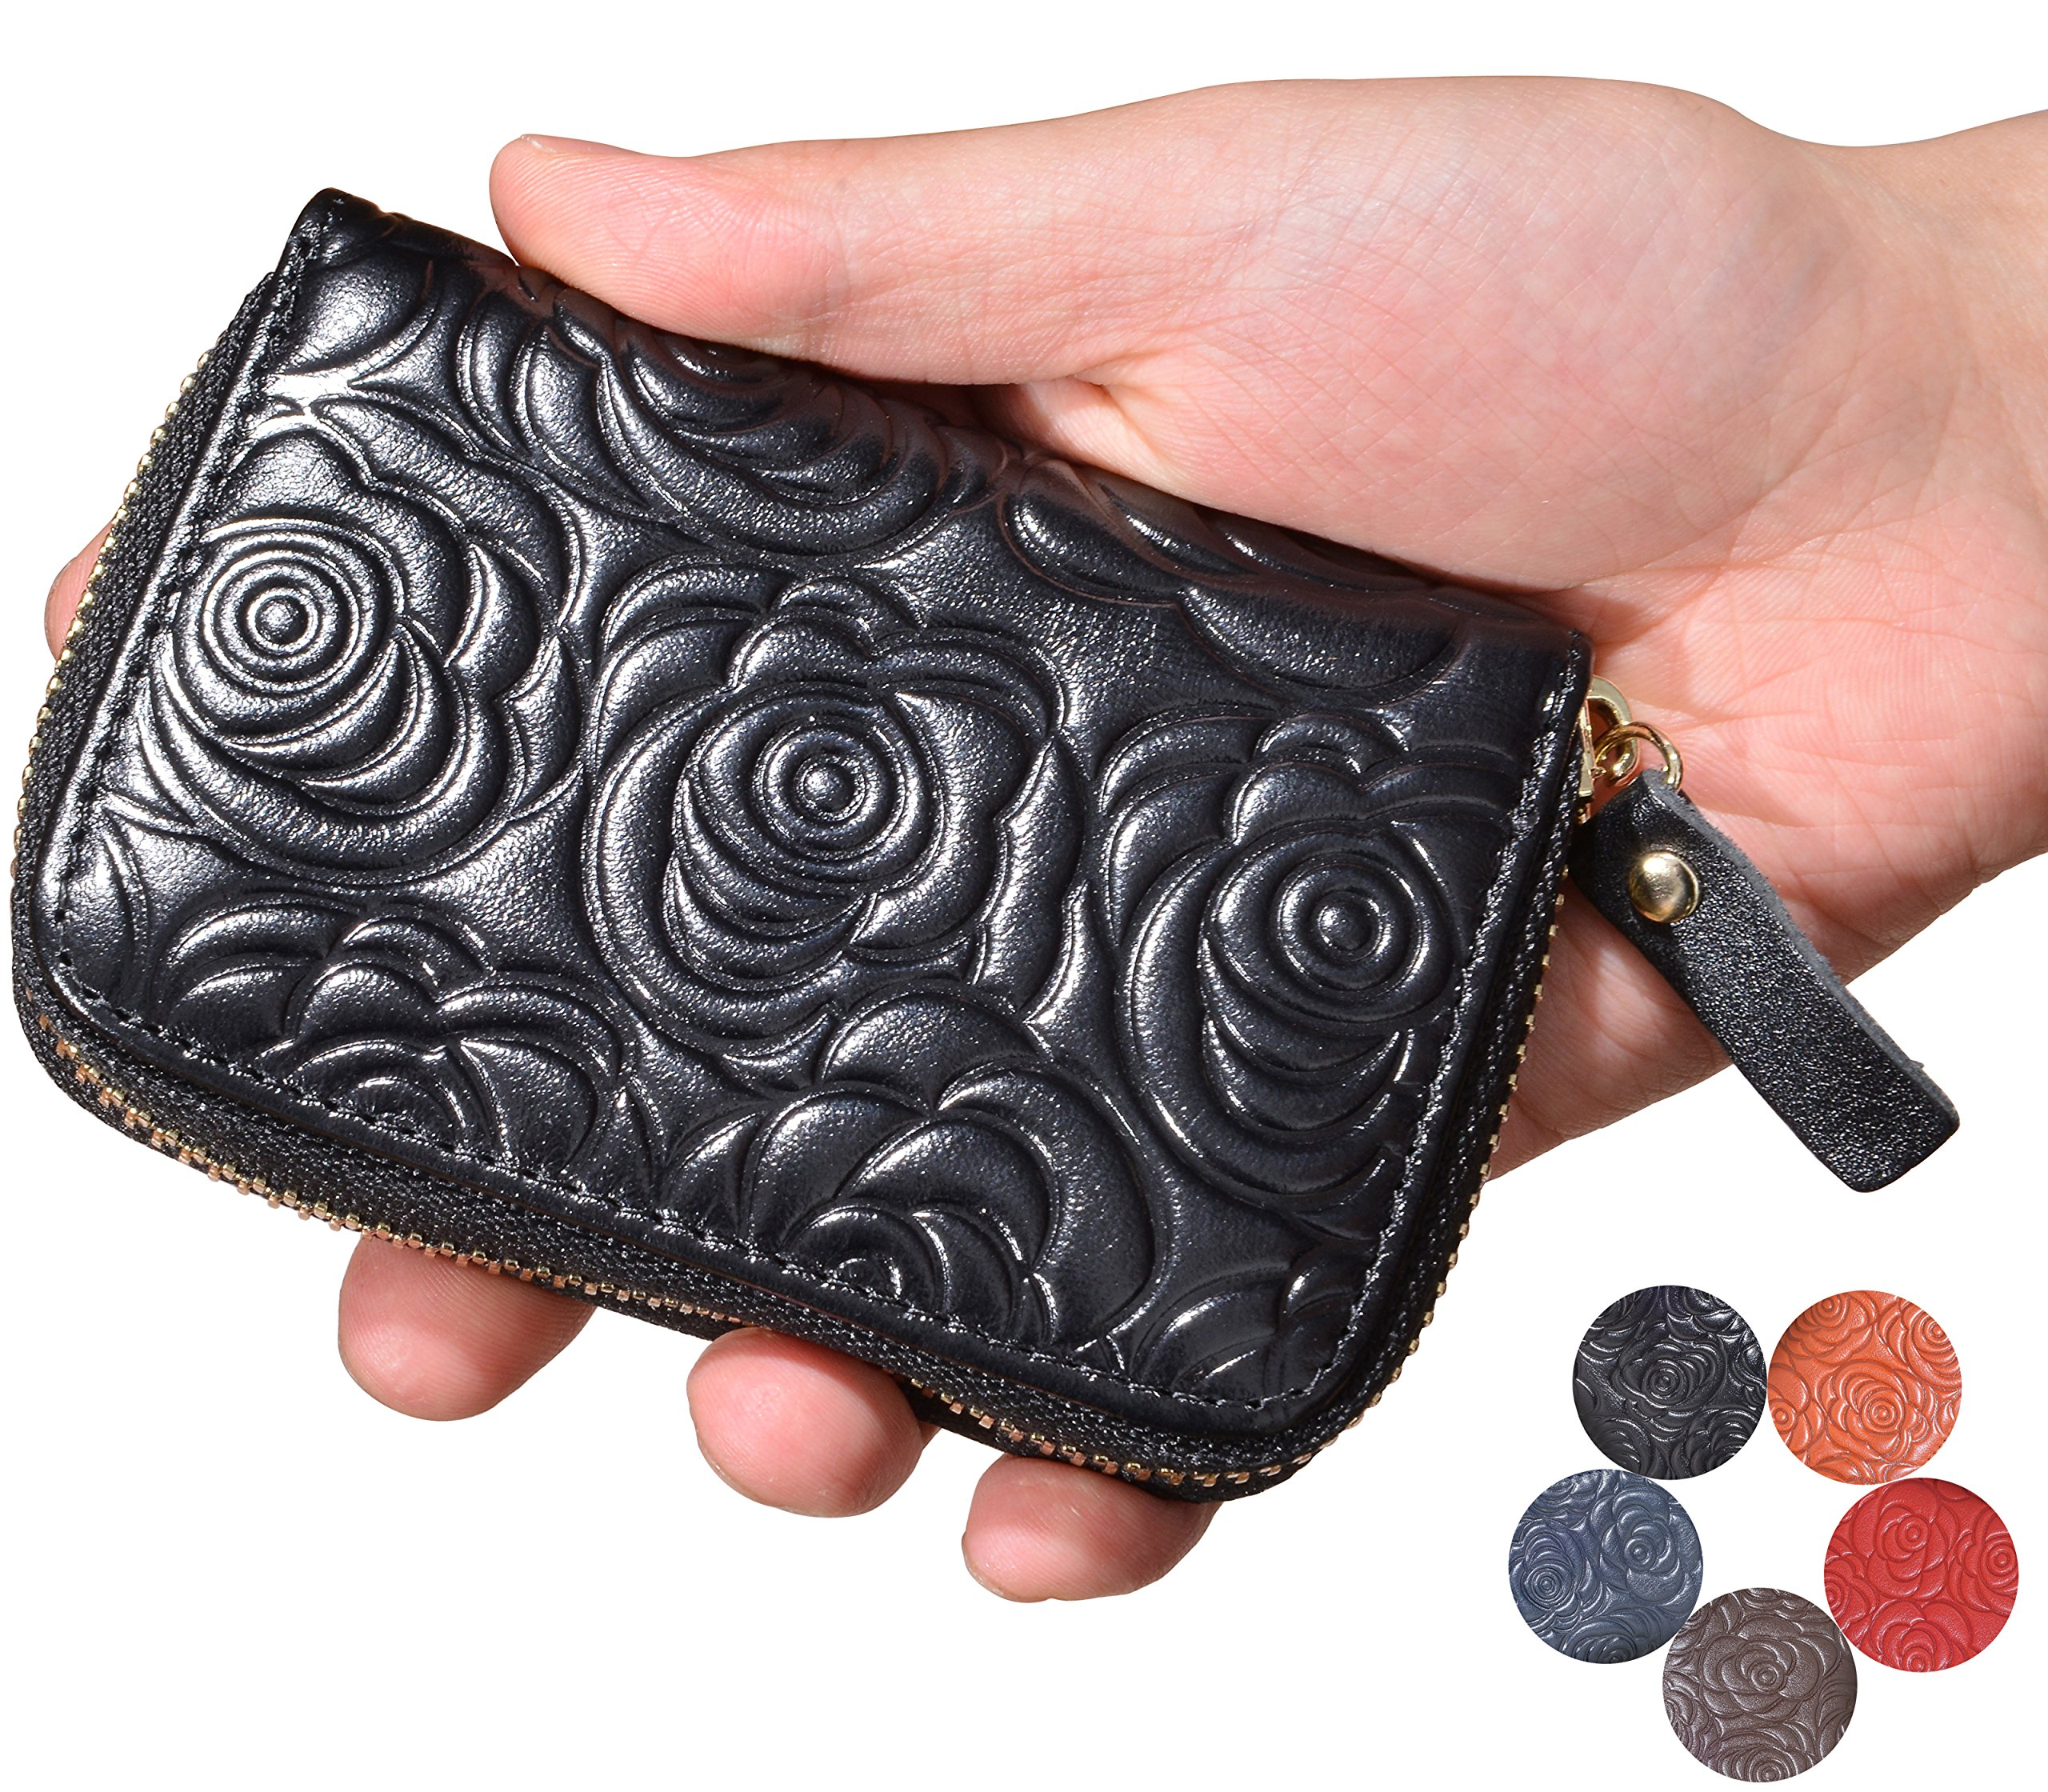 Beurlike Women's Floral Leather Credit Card Holder RFID Security Small Wallet (Black)